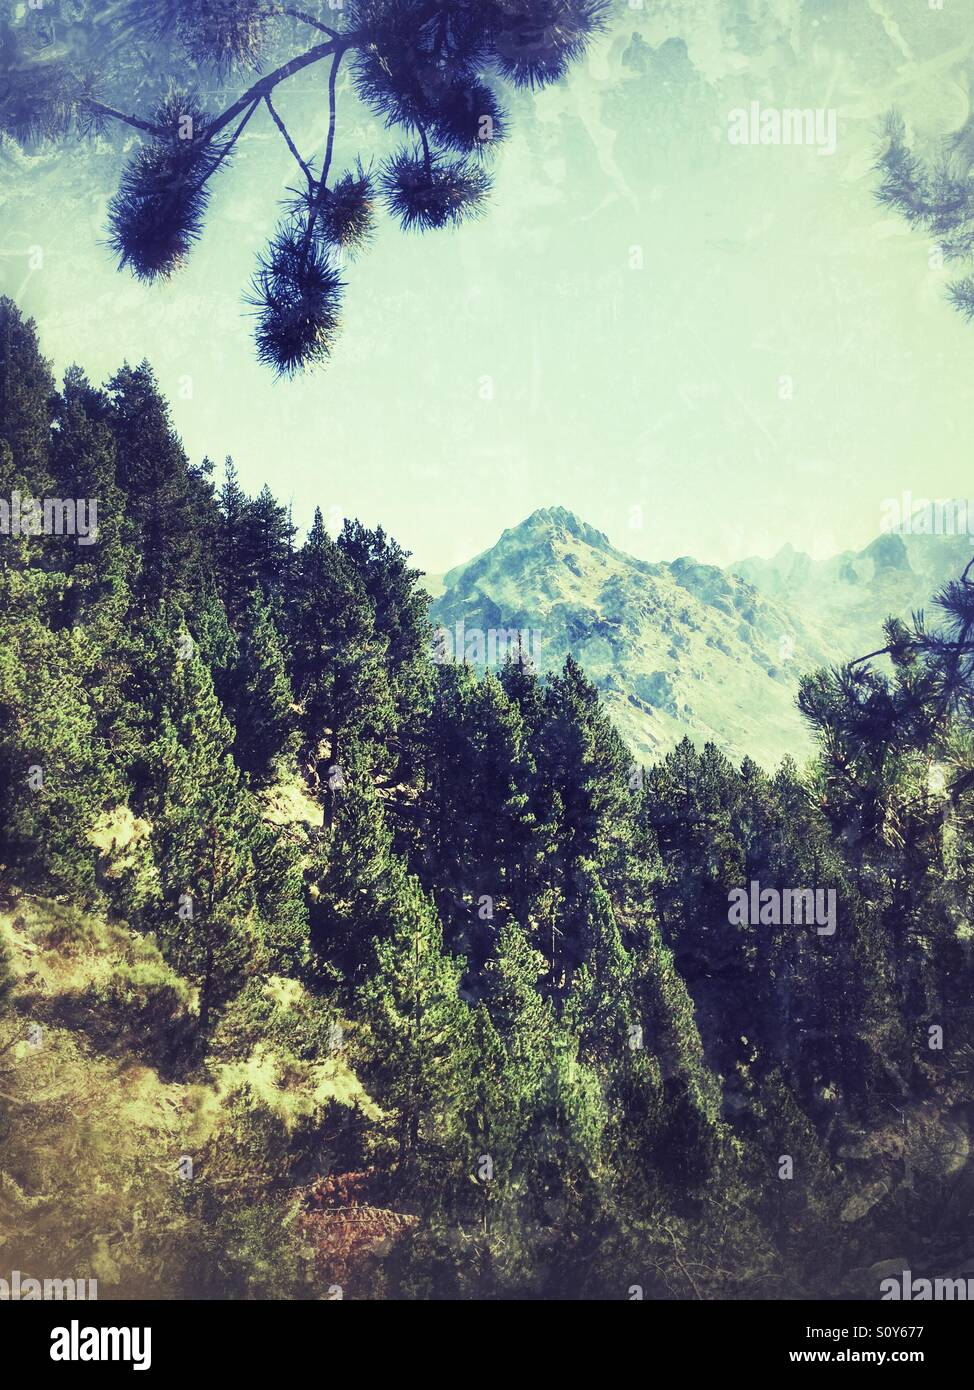 A mountain scene in Andorra - Stock Image